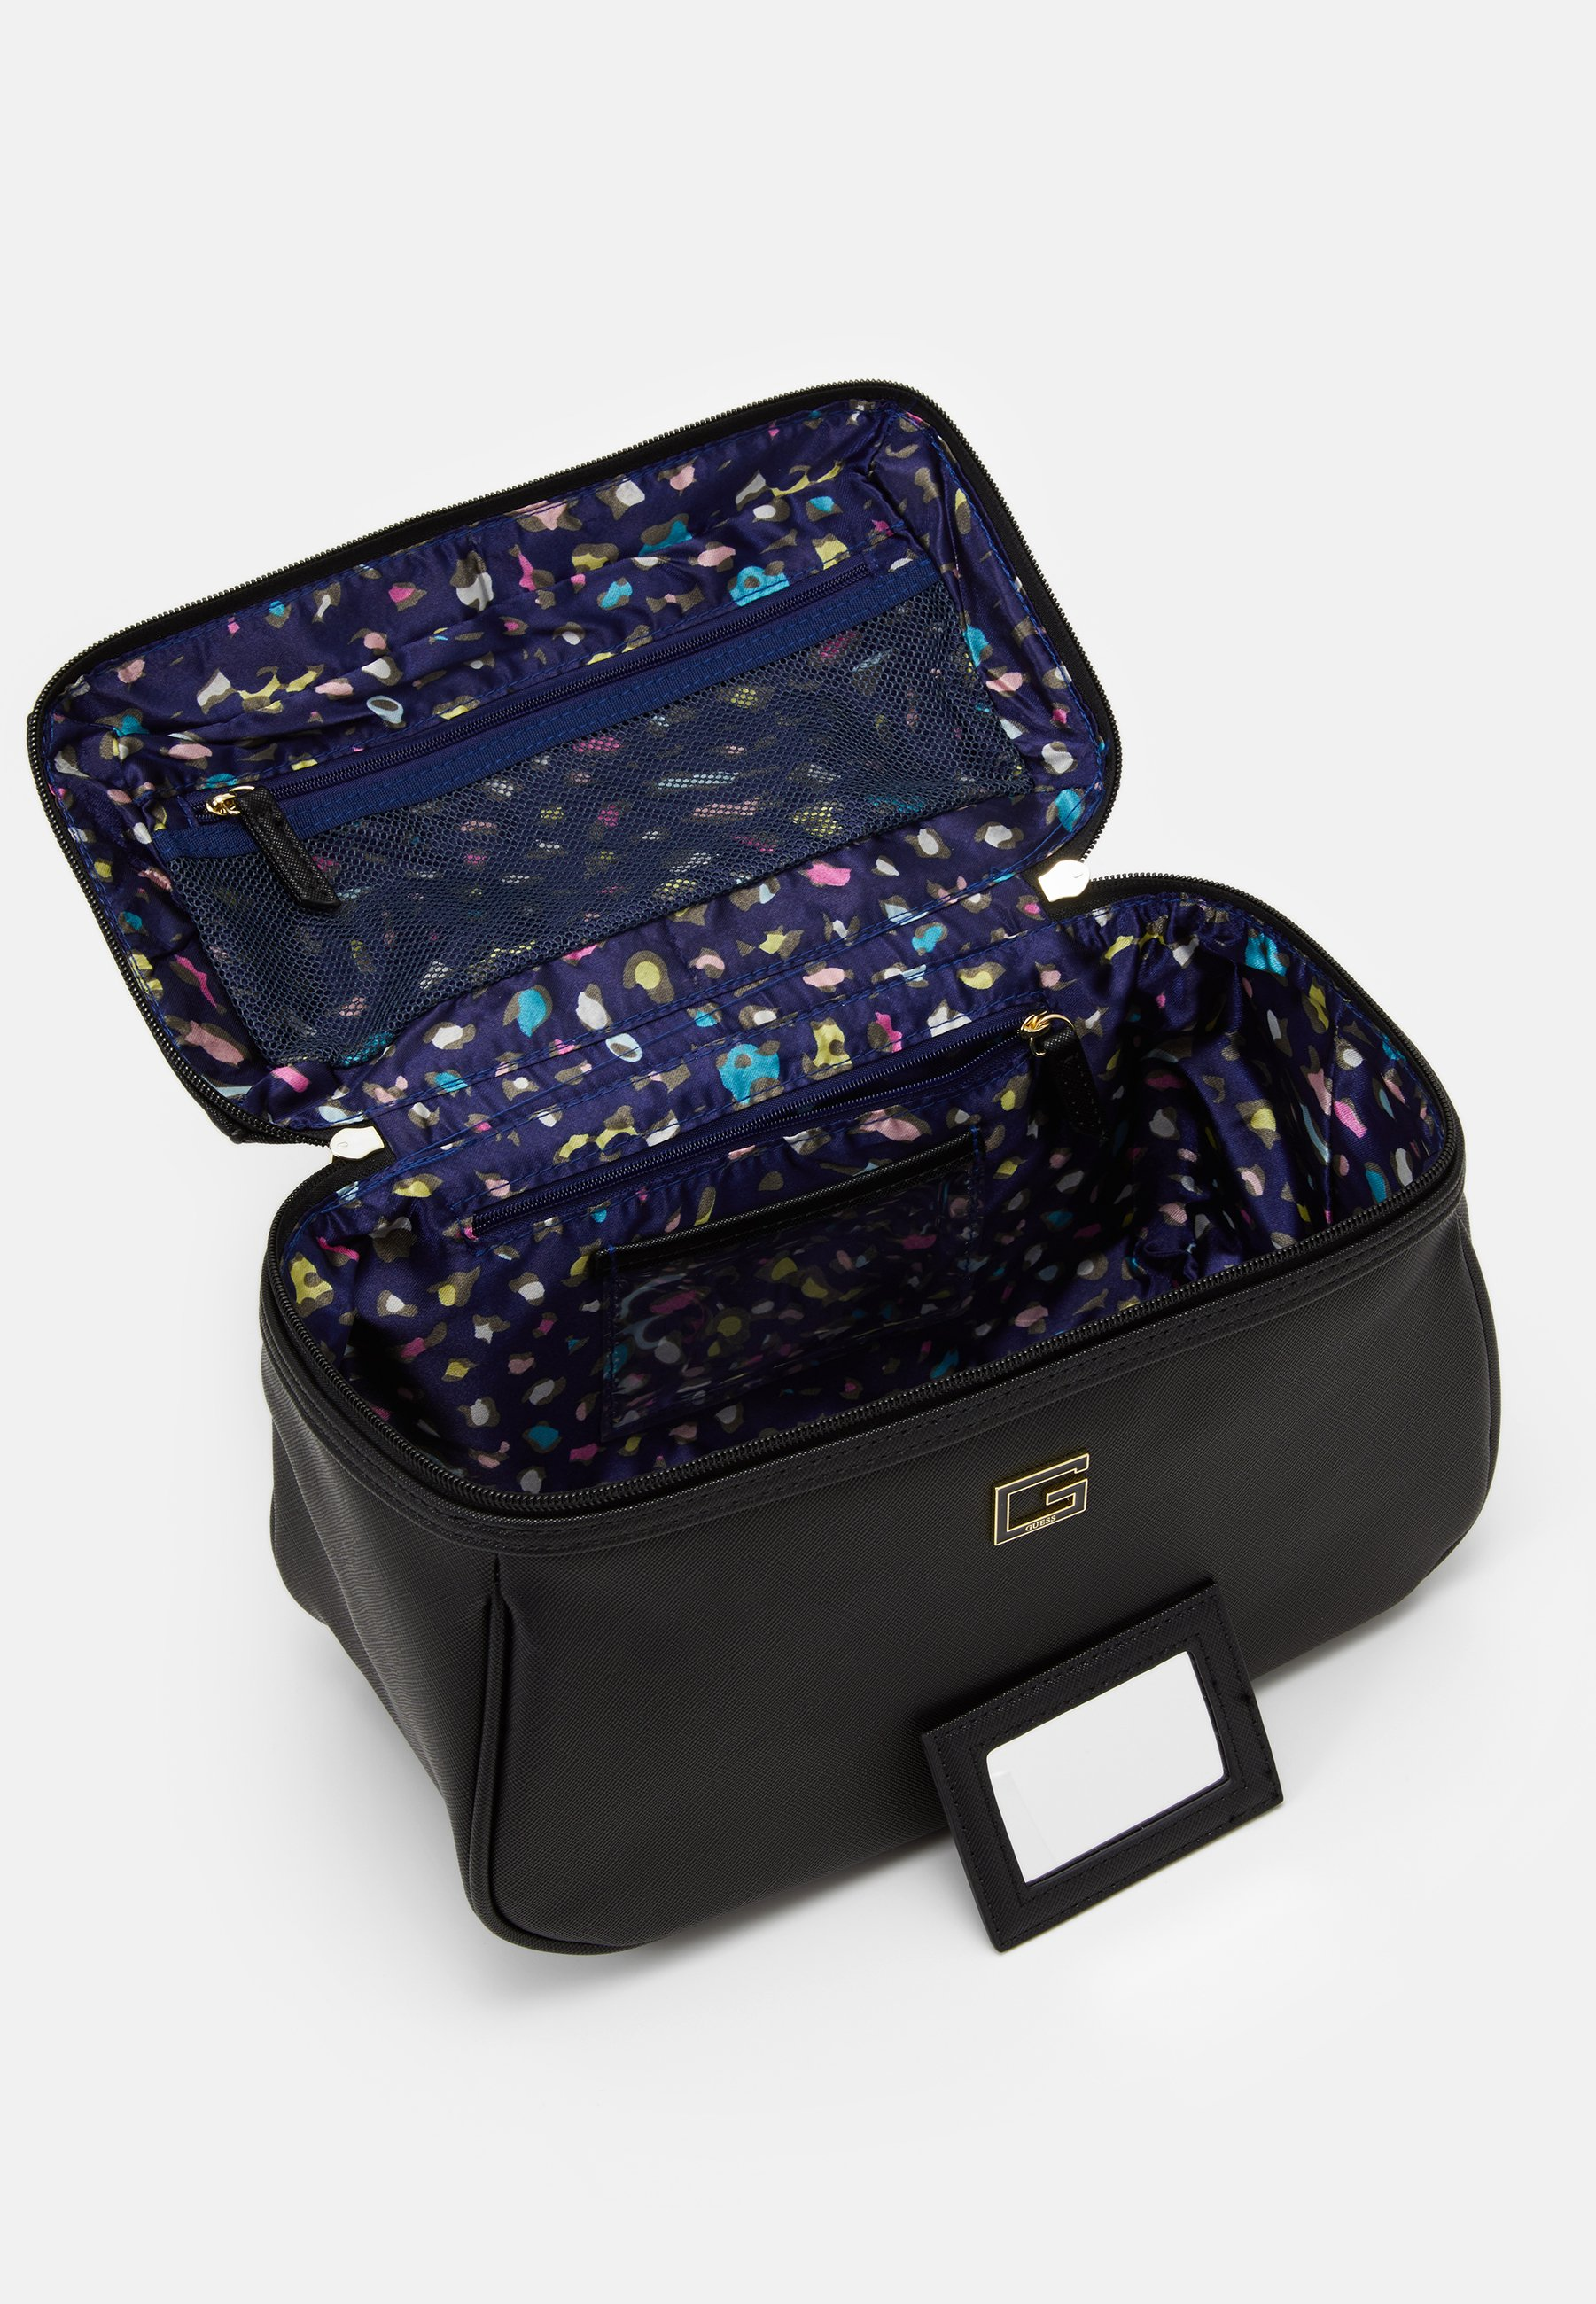 100% Guaranteed Wholesale Quality Accessories Guess NOHEA LARGE BEAUTY Wash bag black QoWvgfsay OaD7uSrST